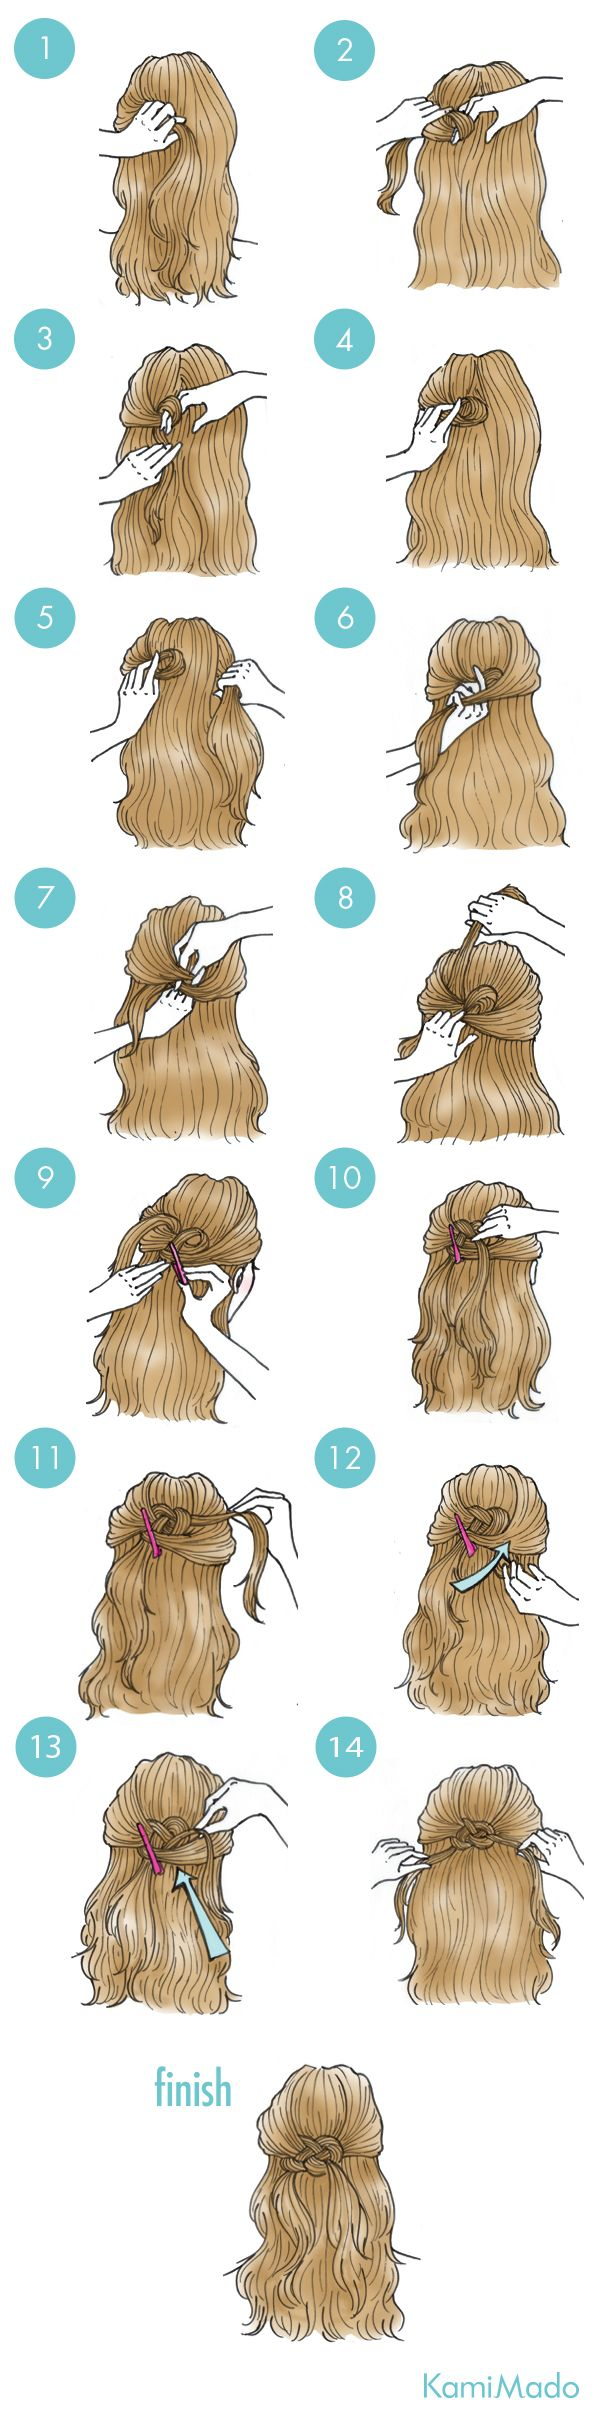 KamiMado Dozens of Japanese hair tutorials with step,by